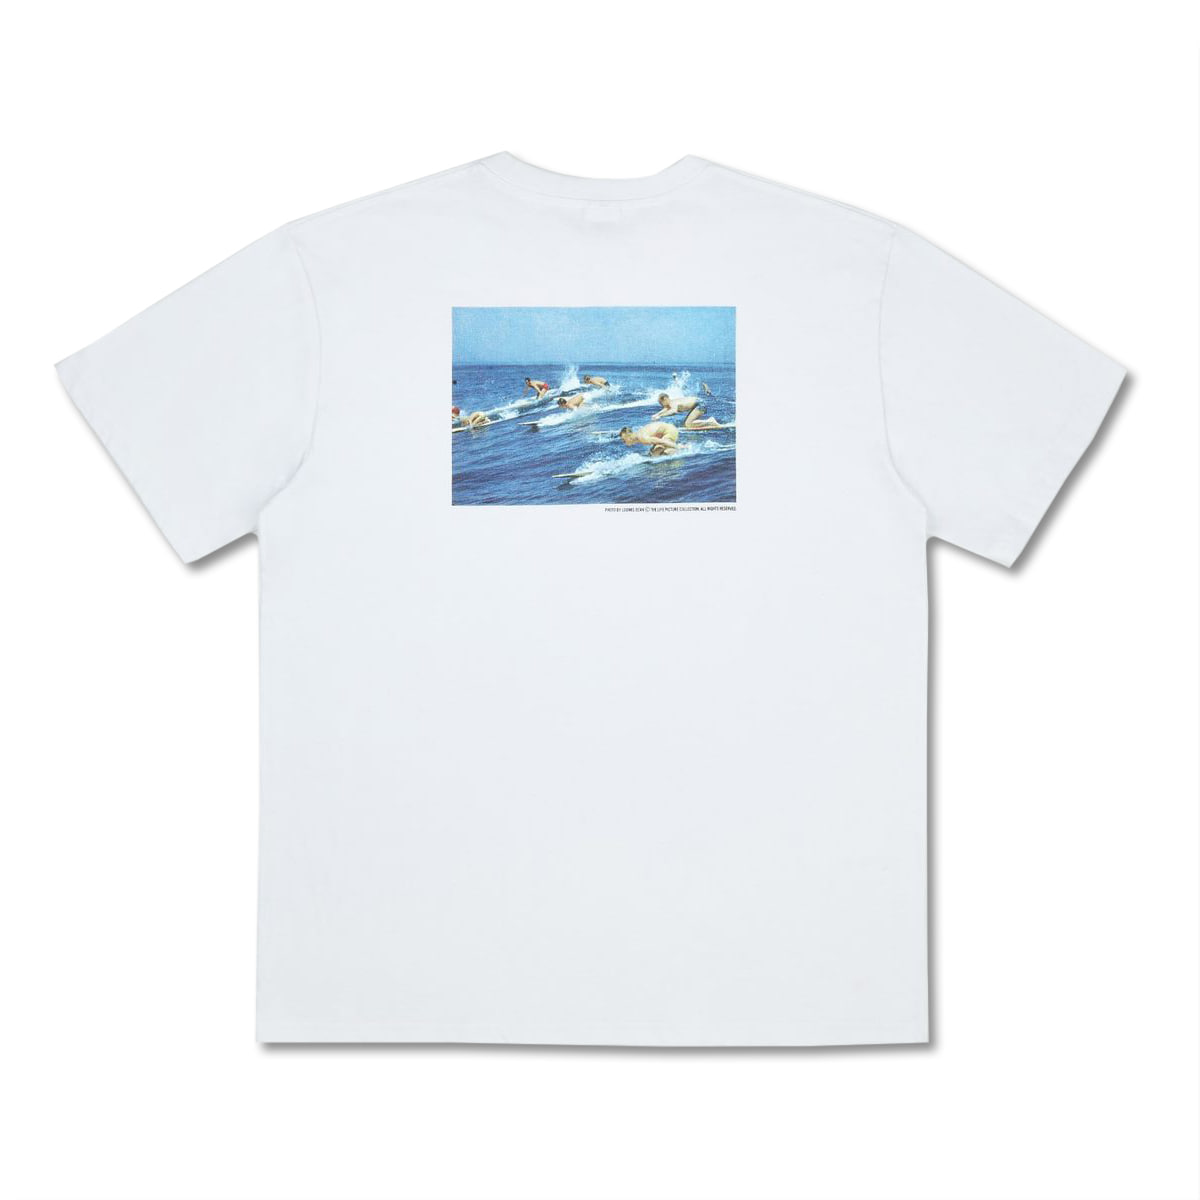 [LIFE ACHIVE] SUMMER LIFE SURFERS T-SHIRT 'WHITE'